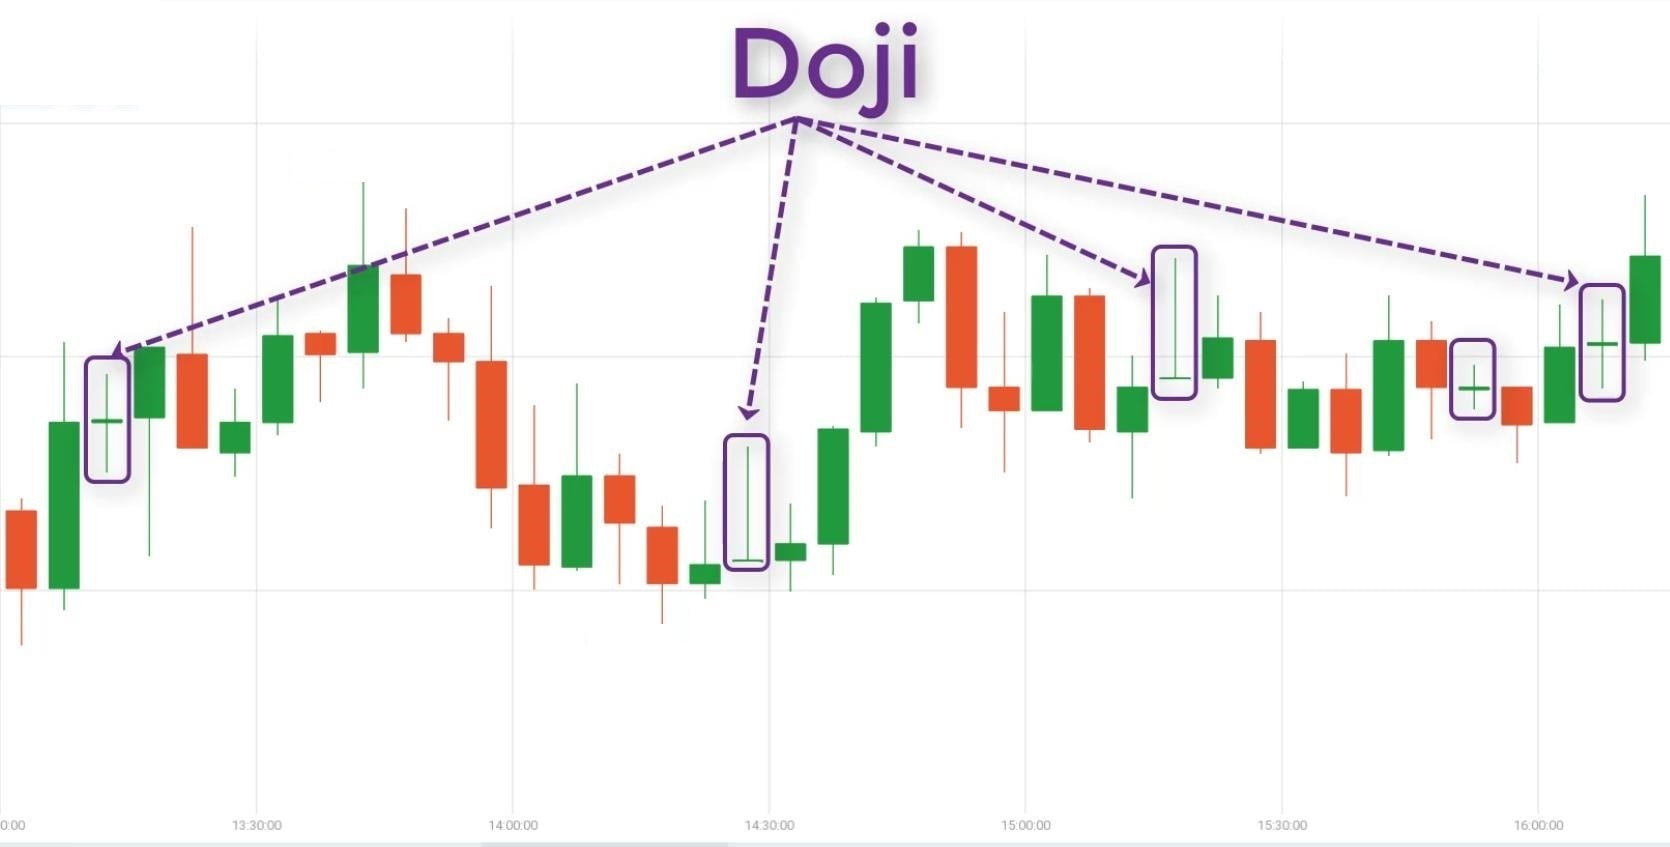 Doji Star and Long-legged Doji